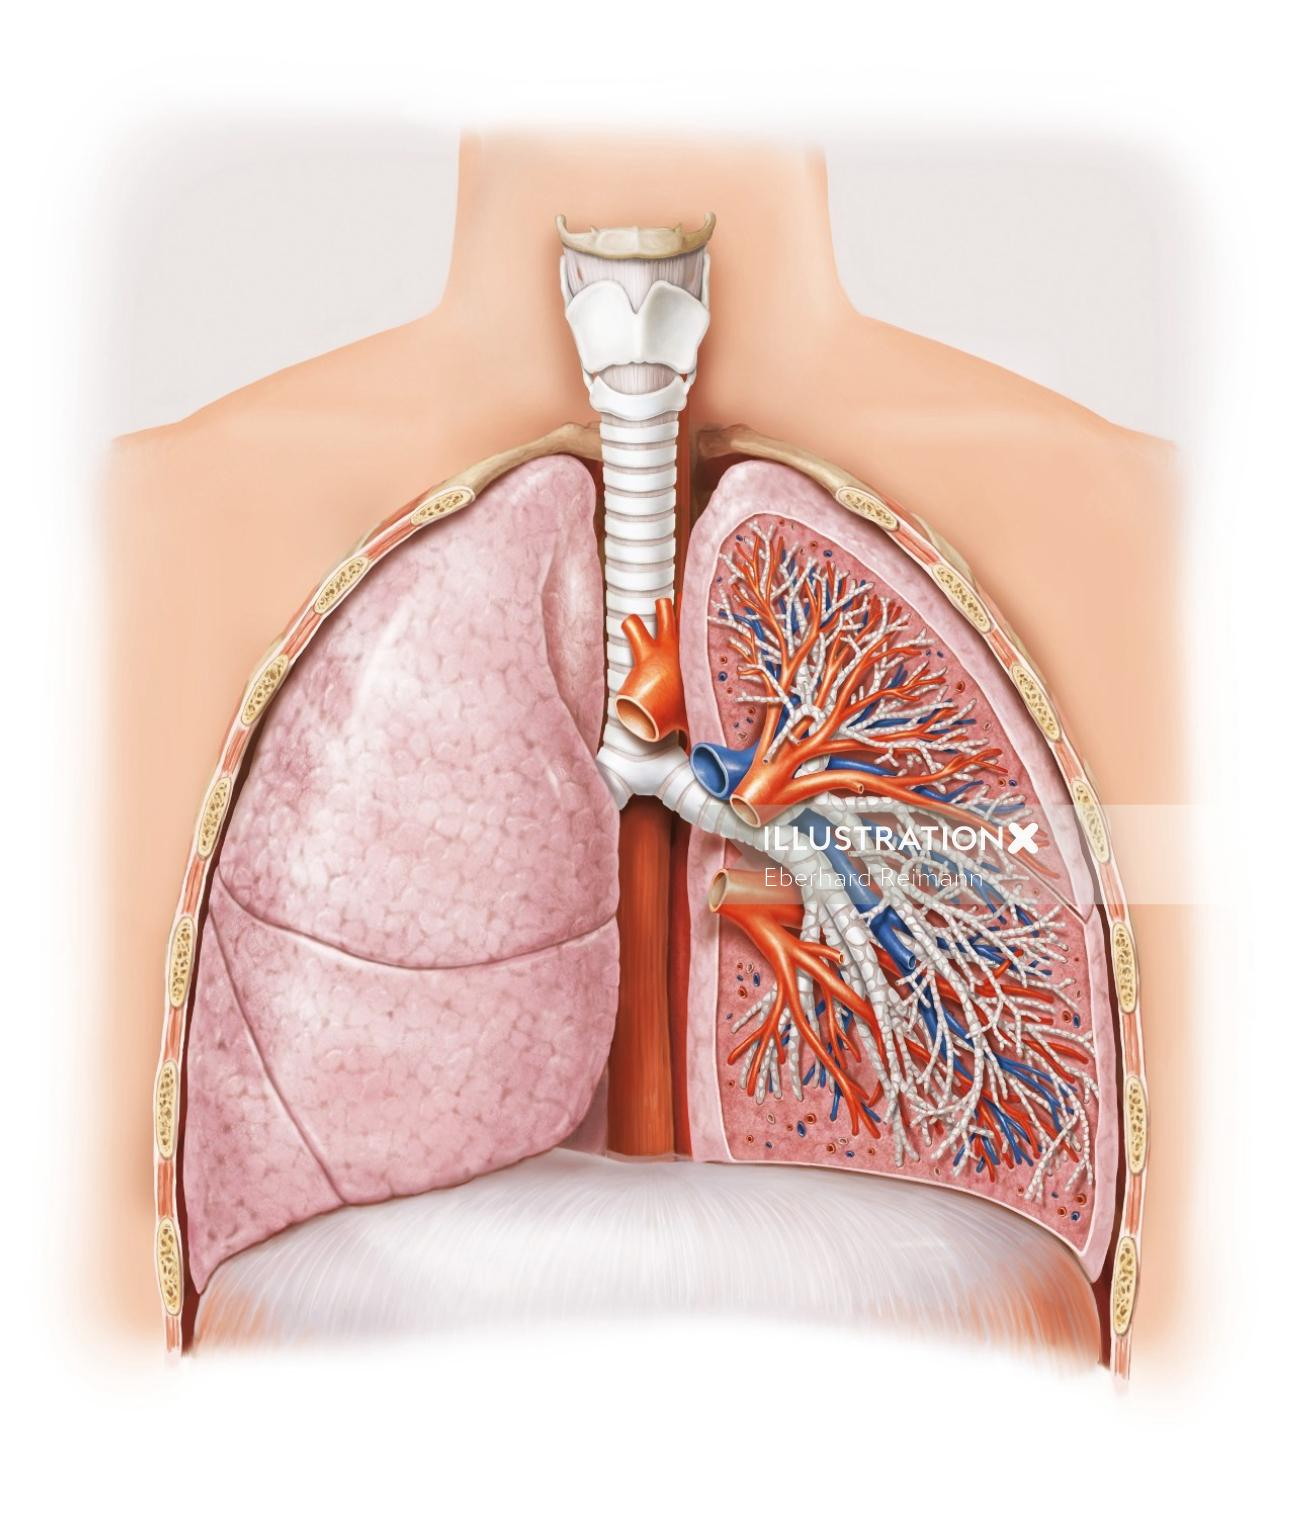 Lungs | Medical illustration collection